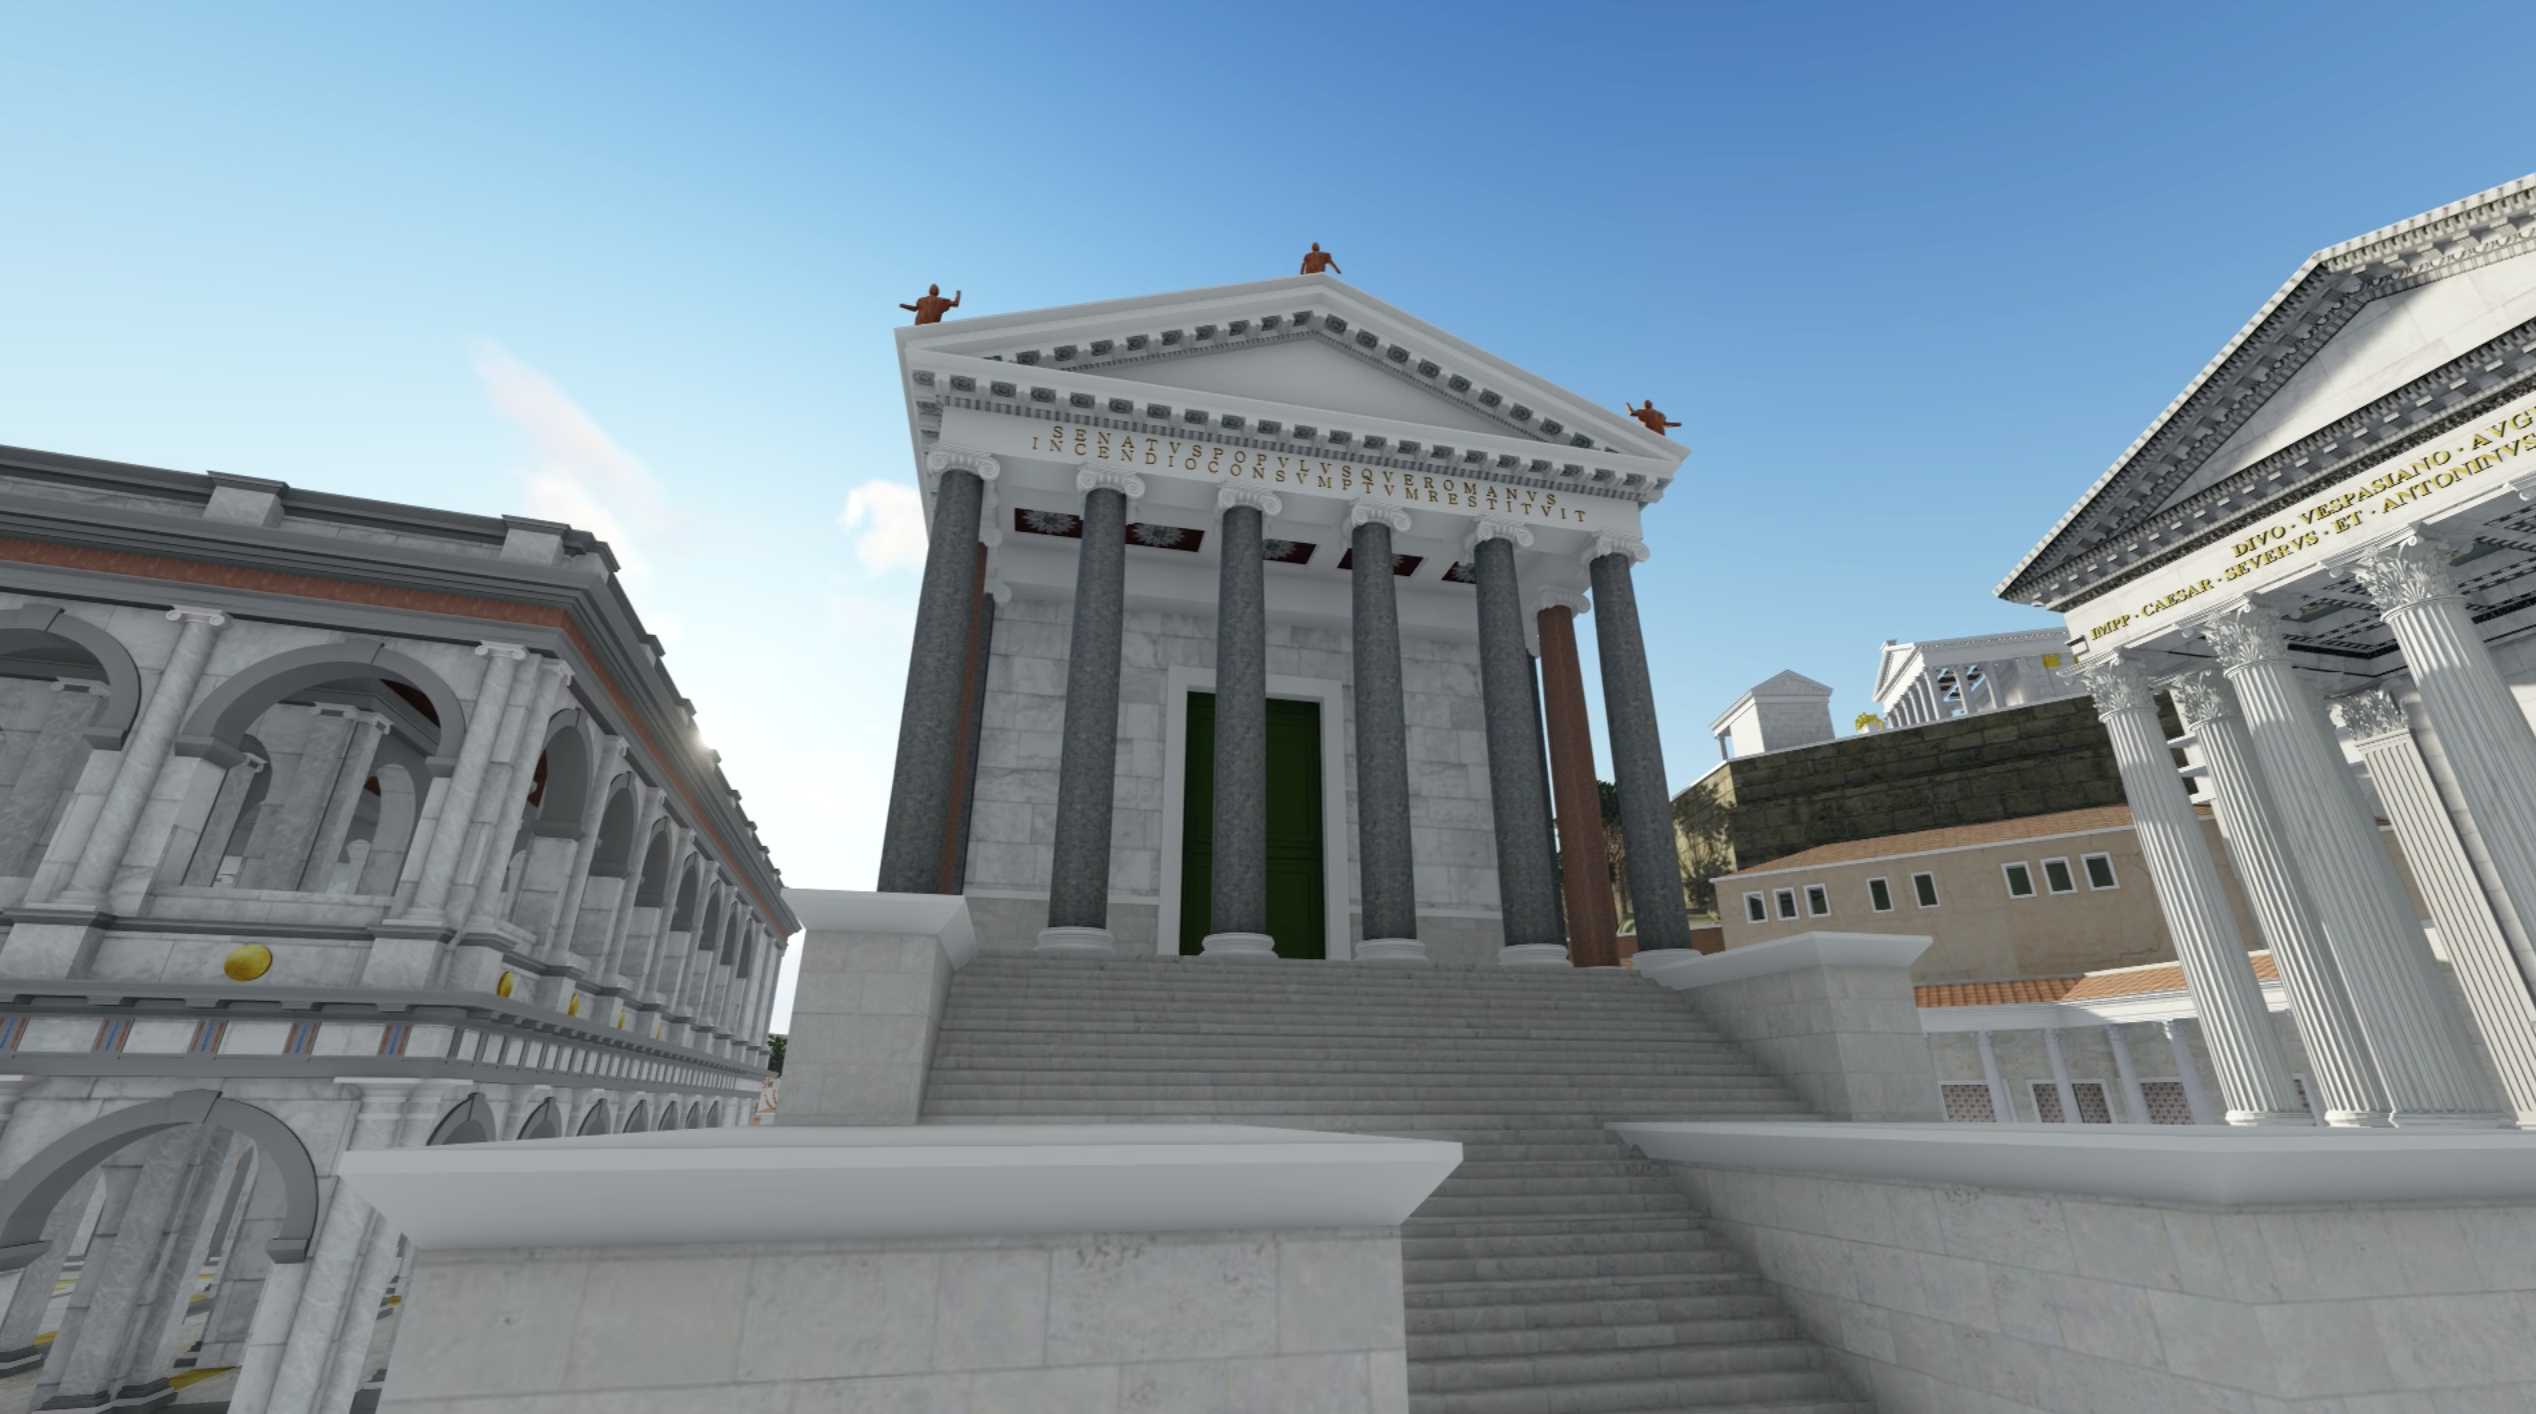 A digital recreation of a temple raised from the ground